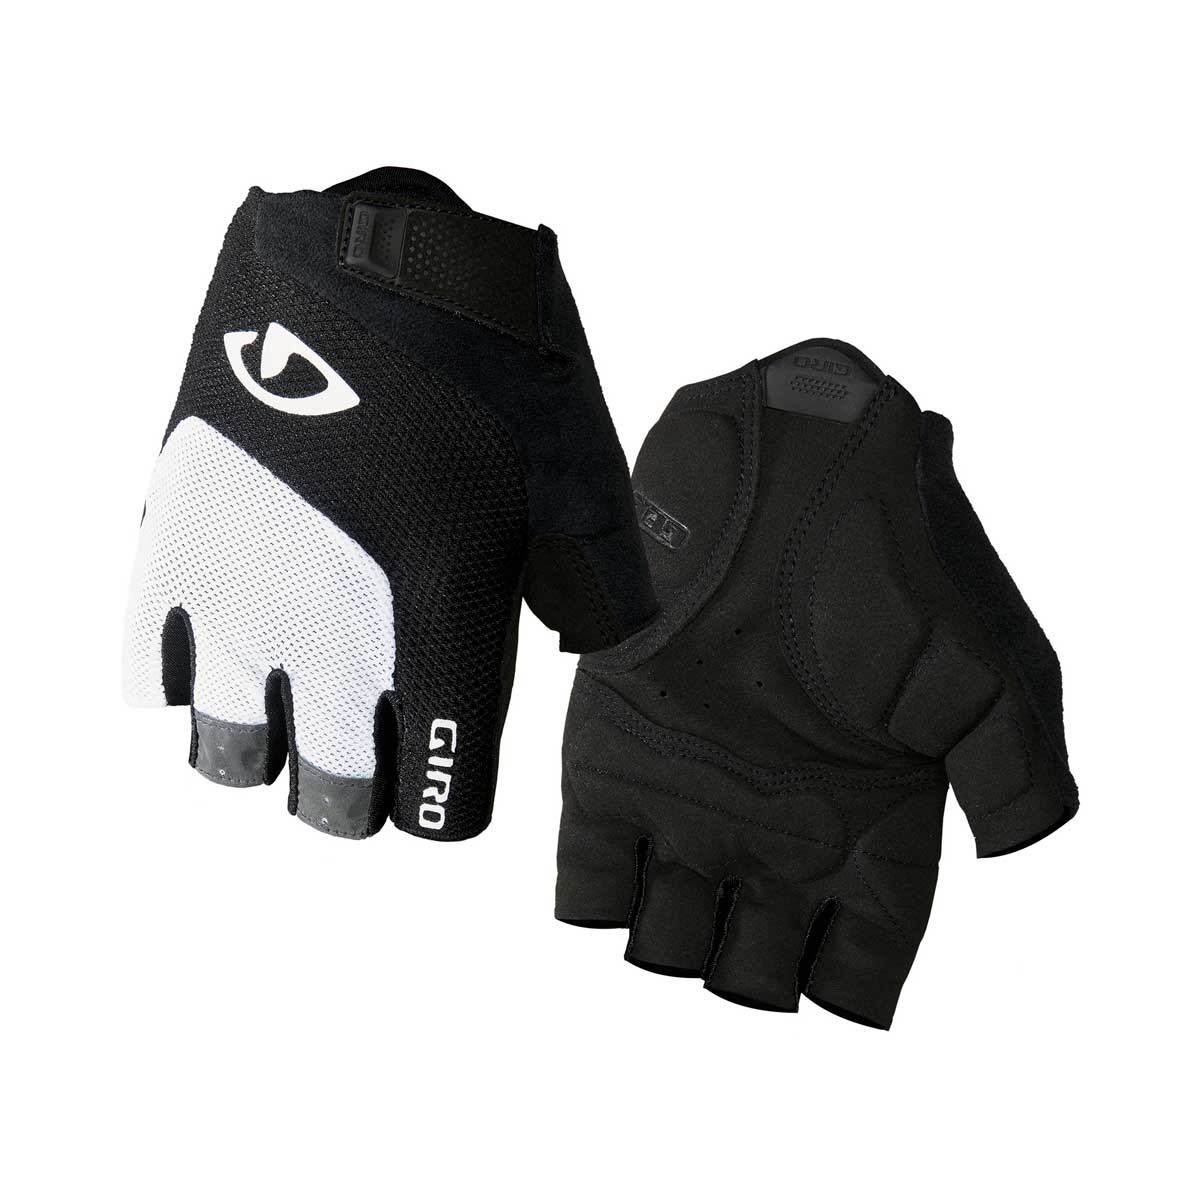 Giro Bravo Gel Gloves in White and Black